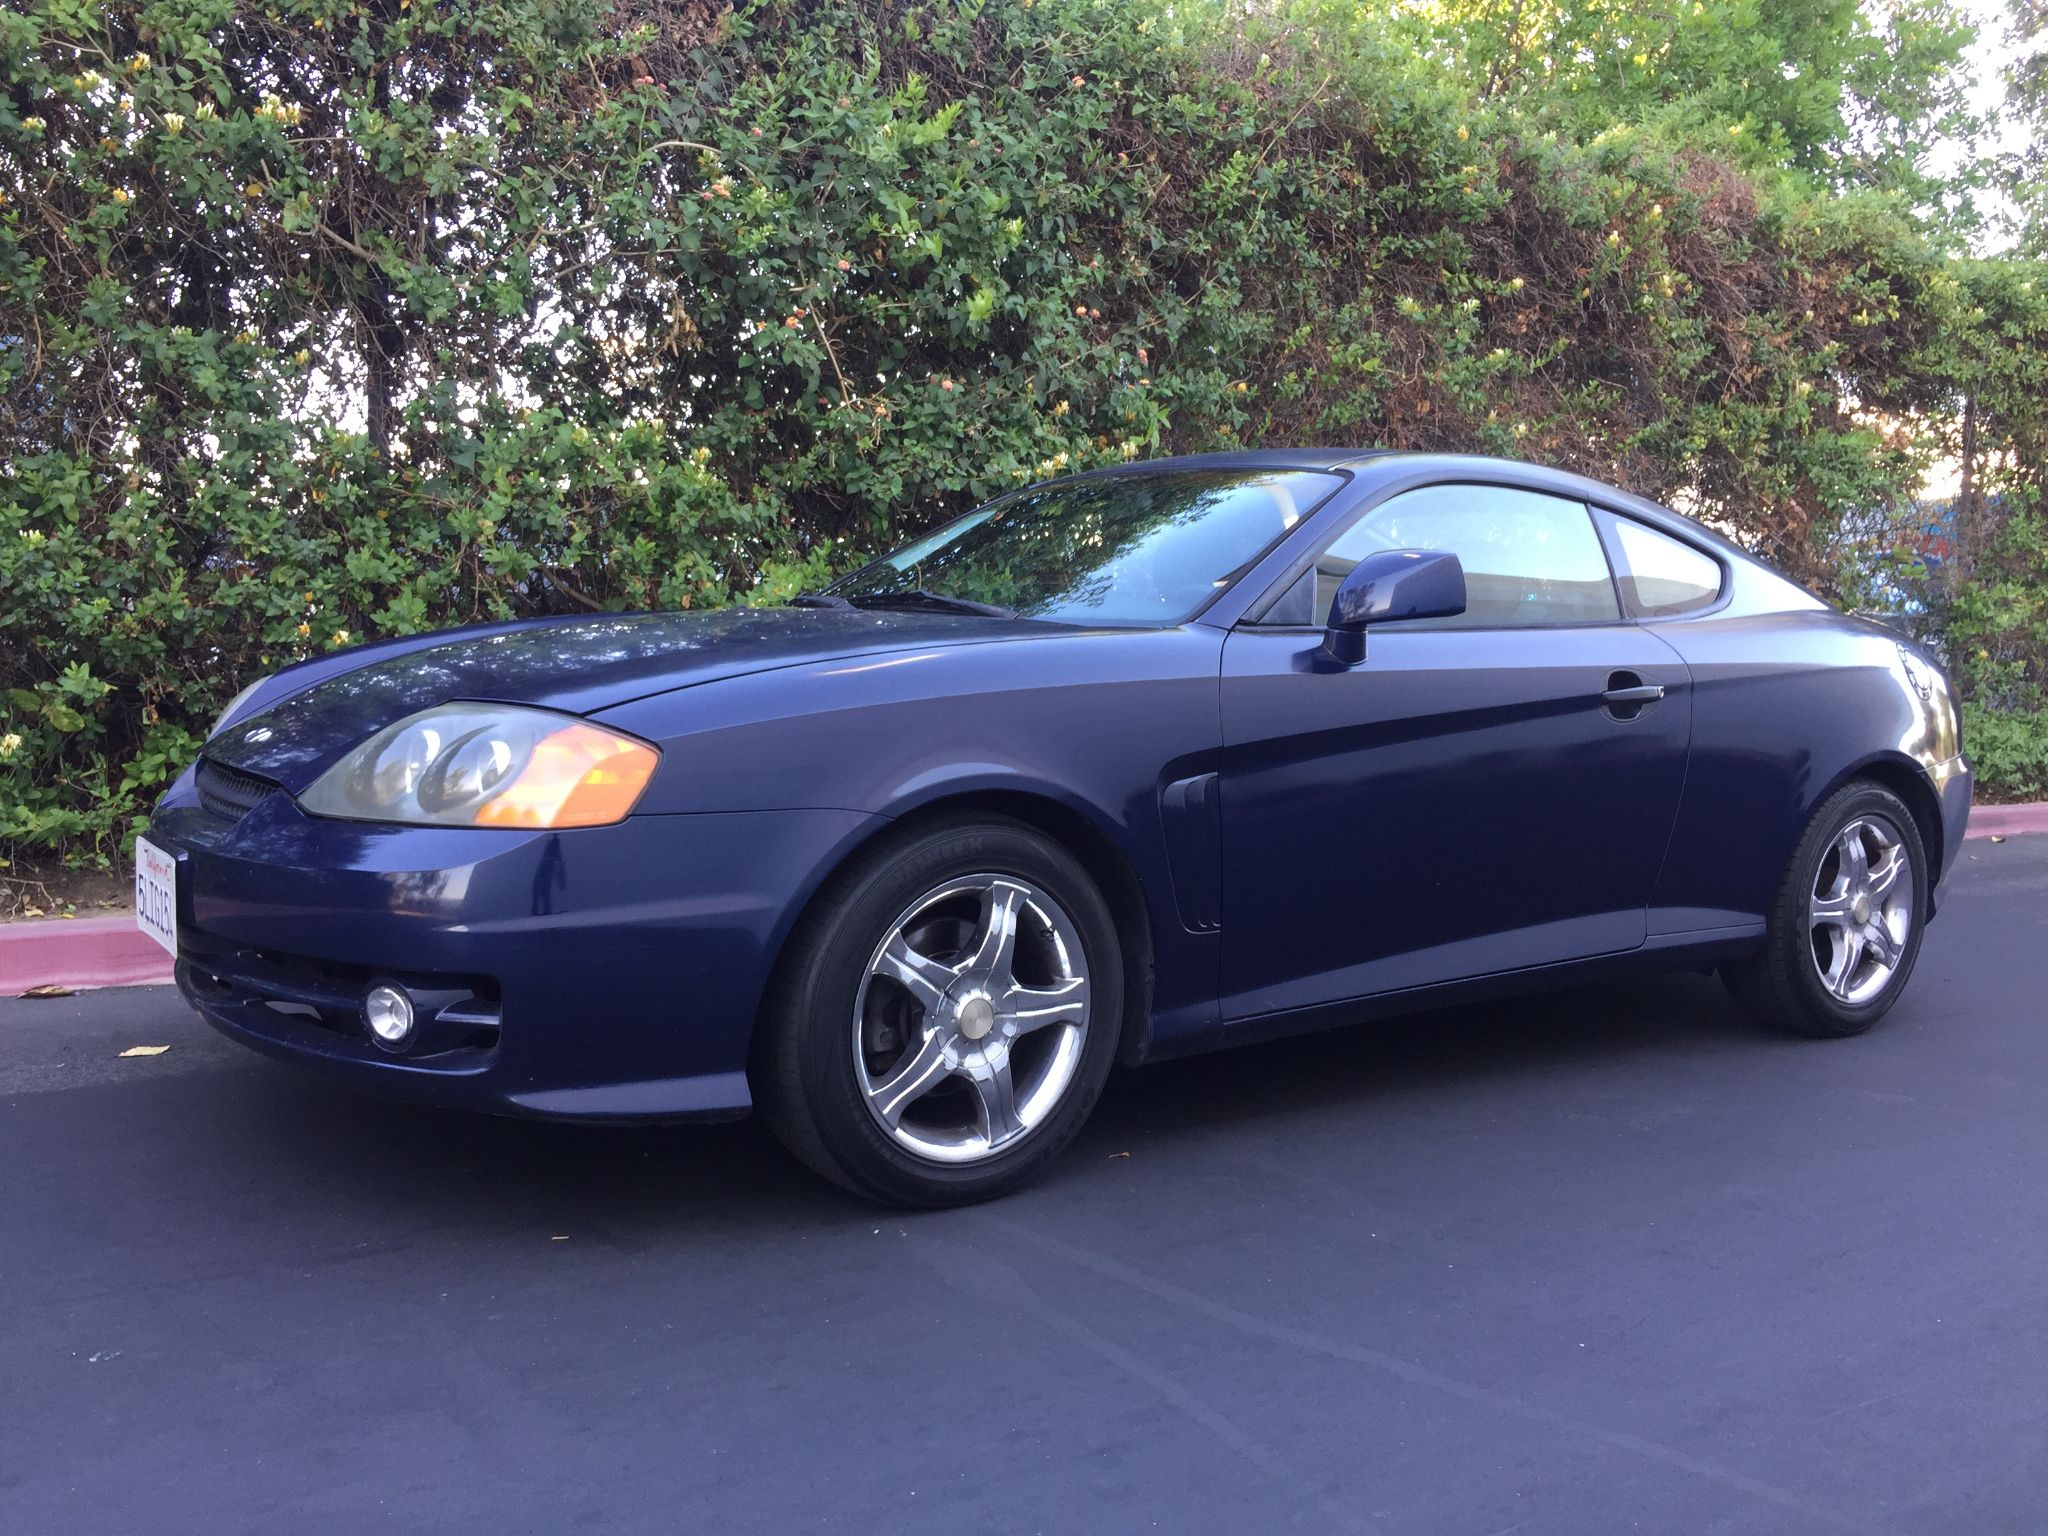 used 2003 hyundai tiburon gt at city cars warehouse inc. Black Bedroom Furniture Sets. Home Design Ideas